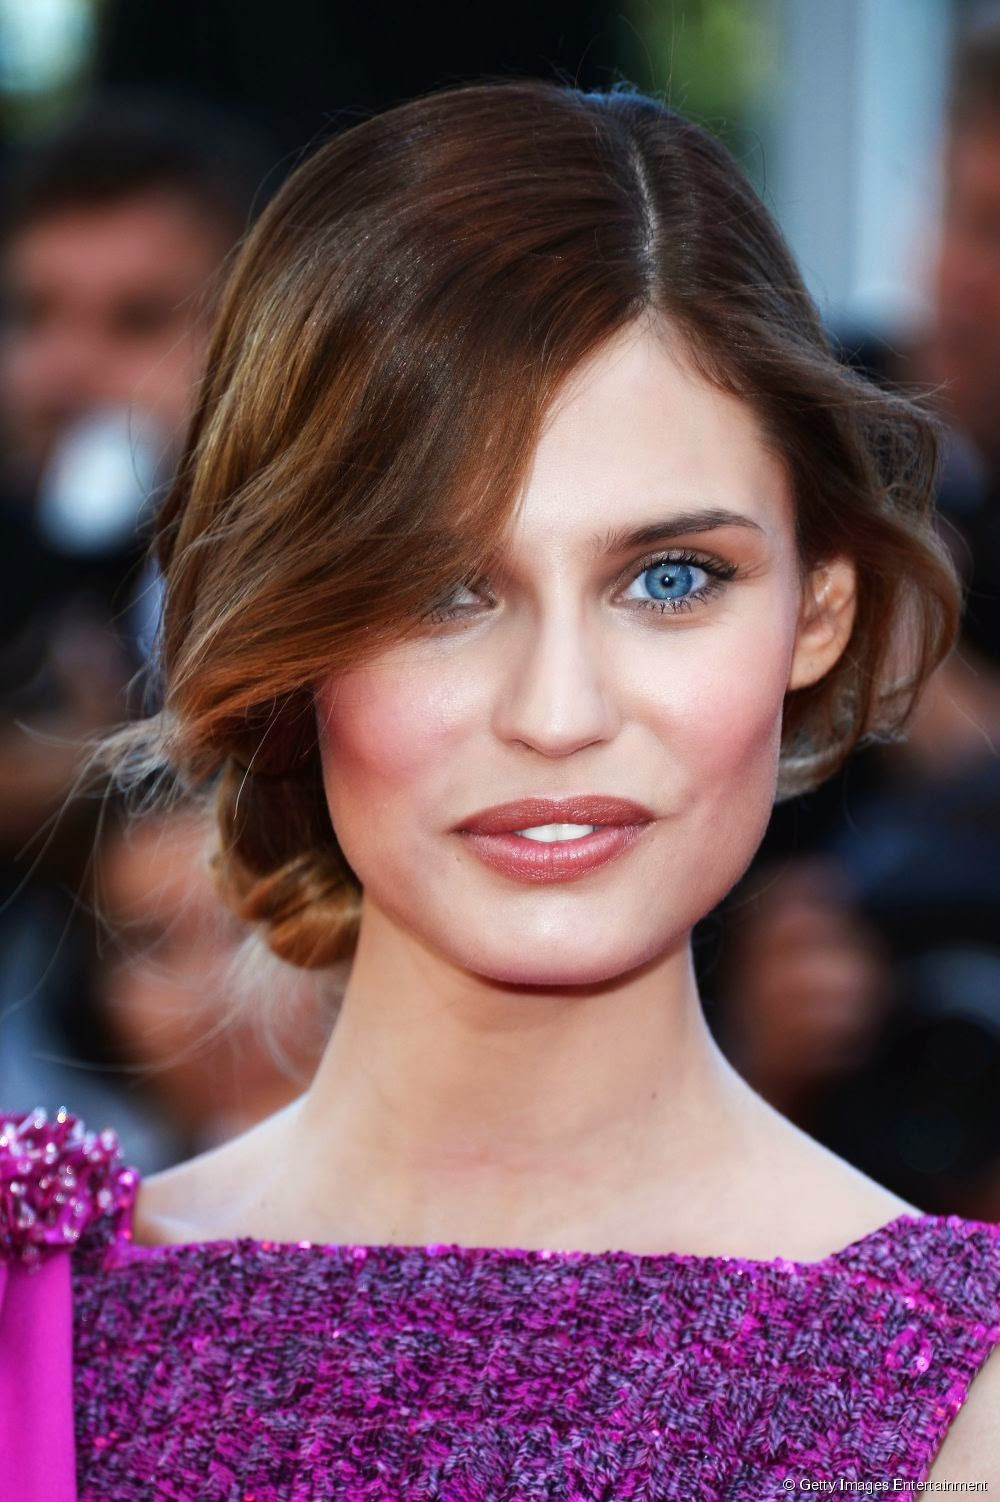 Italian Model Bianca Balti HD Images | HD Wallpapers of Bianca Balti